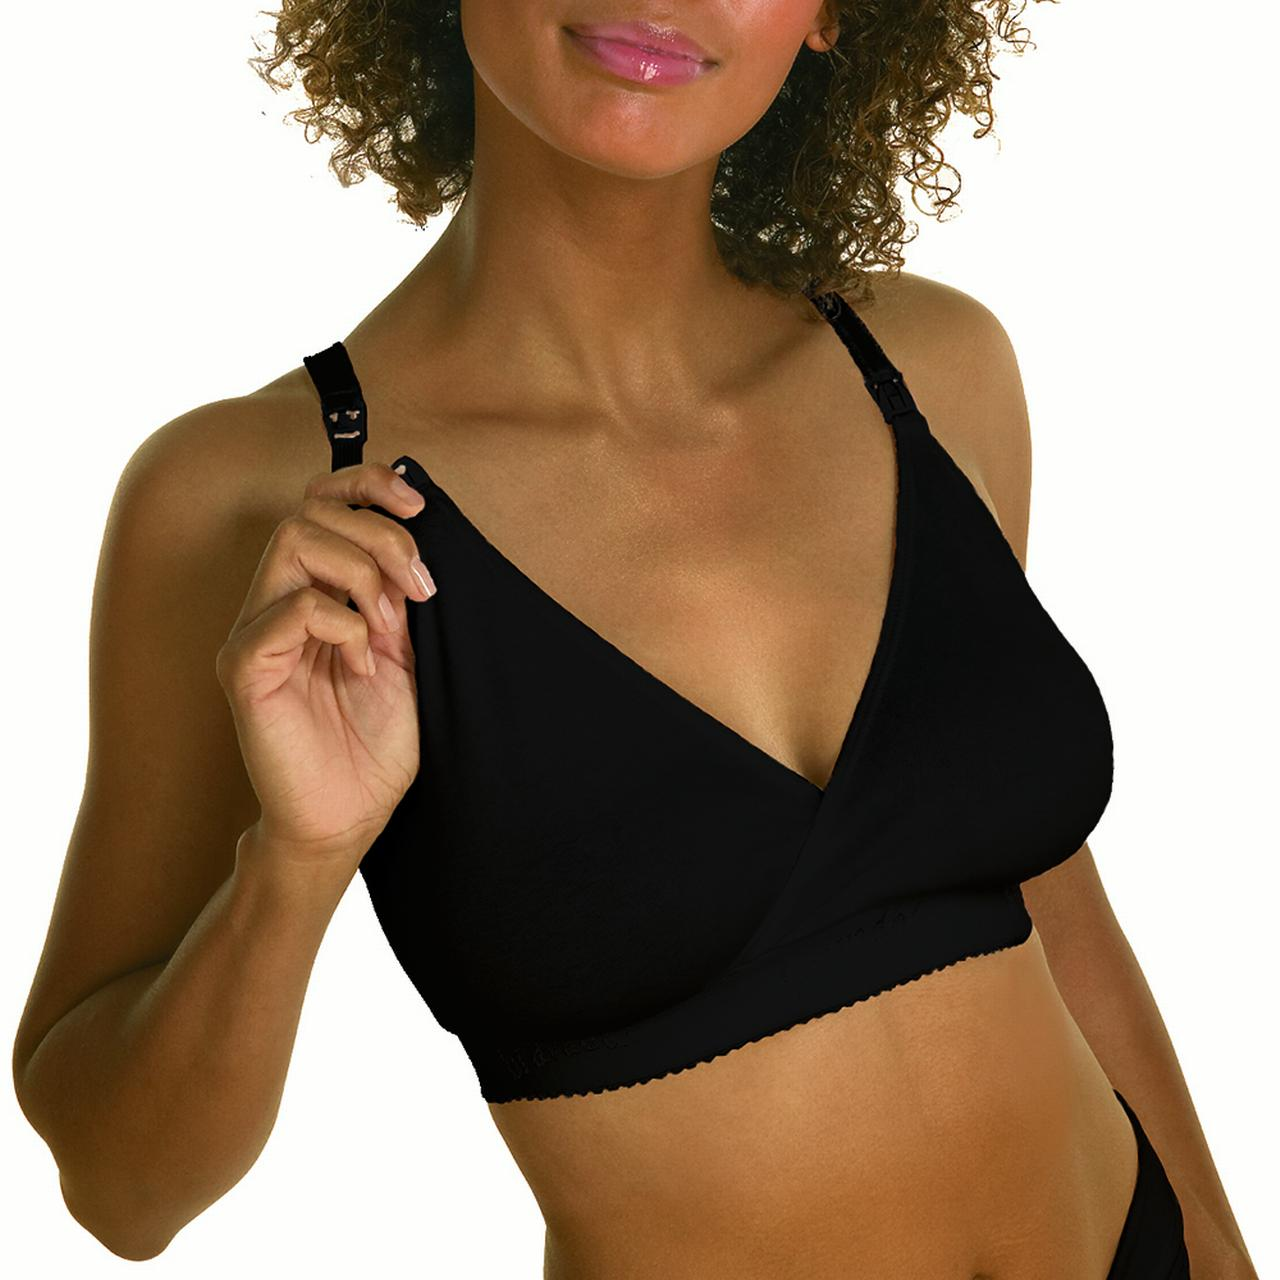 Bravado Designs Original Nursing Bra - Basic Style - Butterscotch - S (32-36 B)